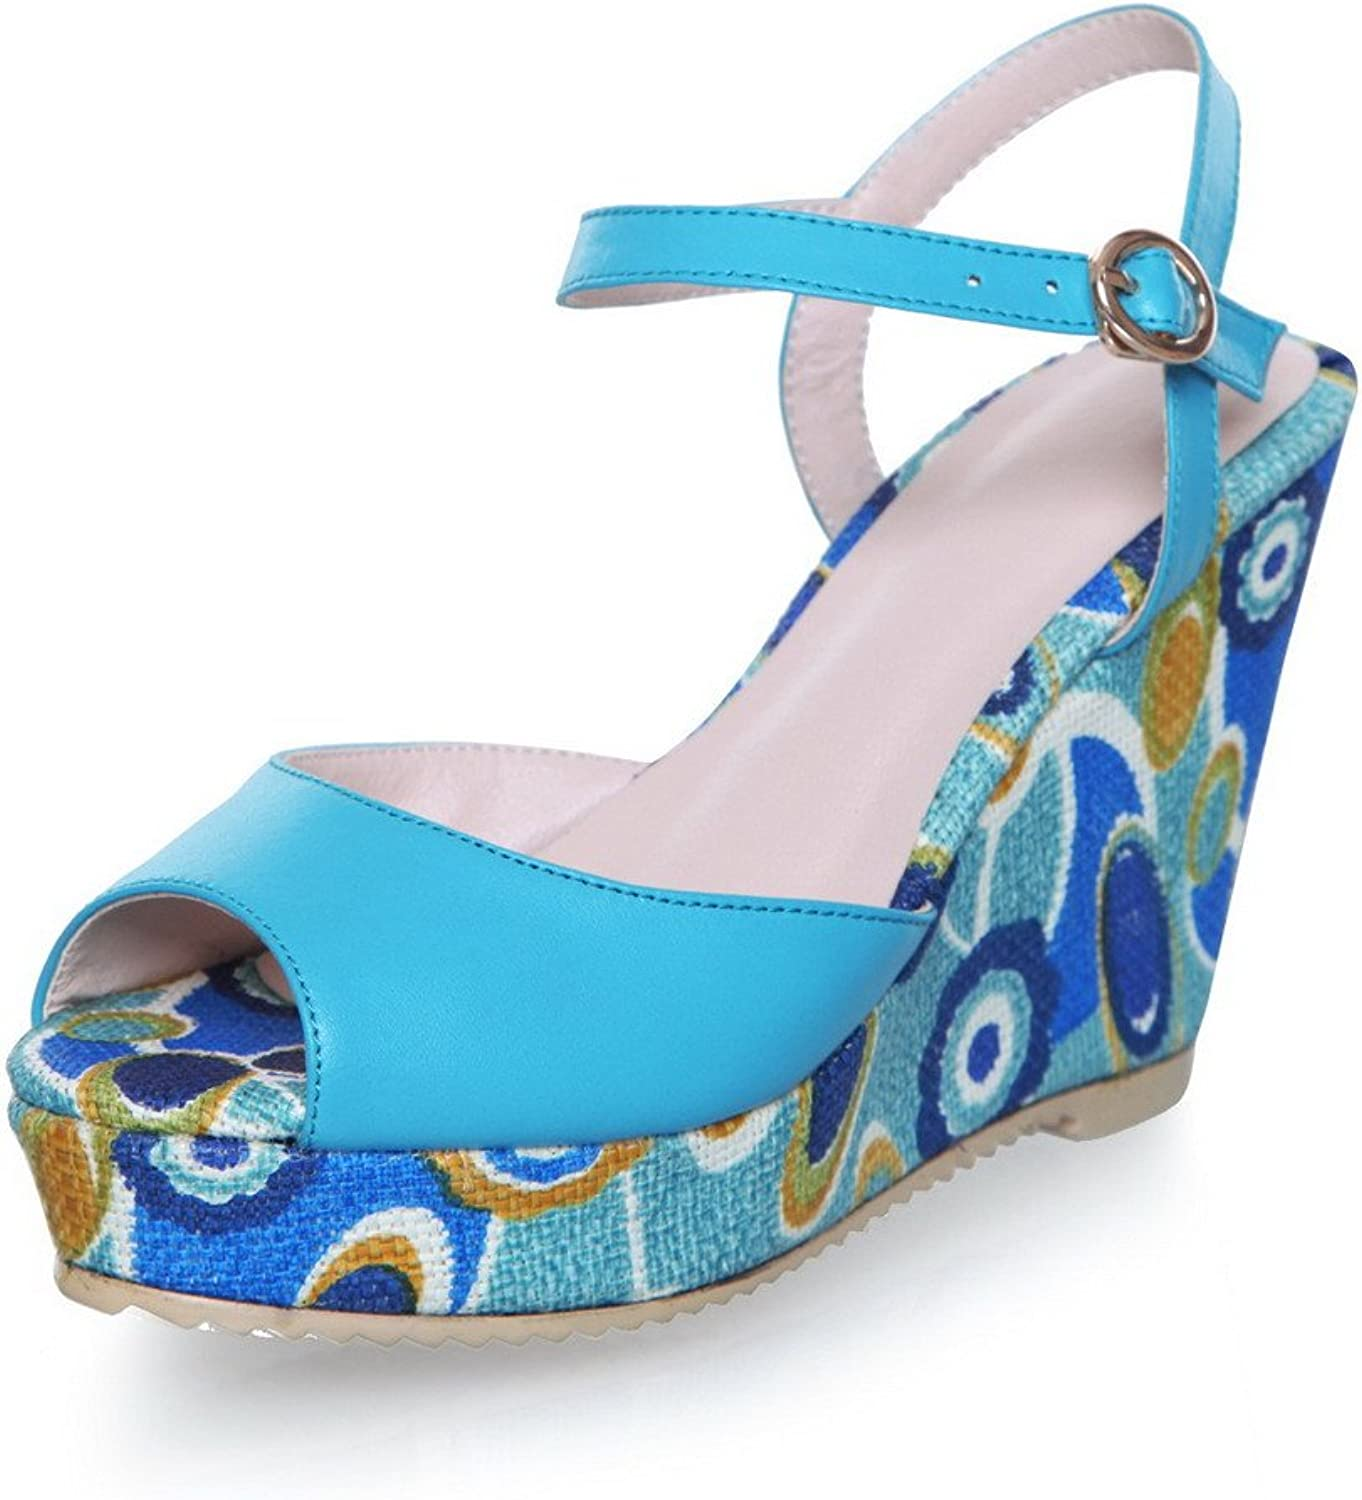 WeiPoot Women Peep Toe High Heel Wedge Cow Leather Soft Material Assorted colors Sandals, bluee, 7.5 B(M) US